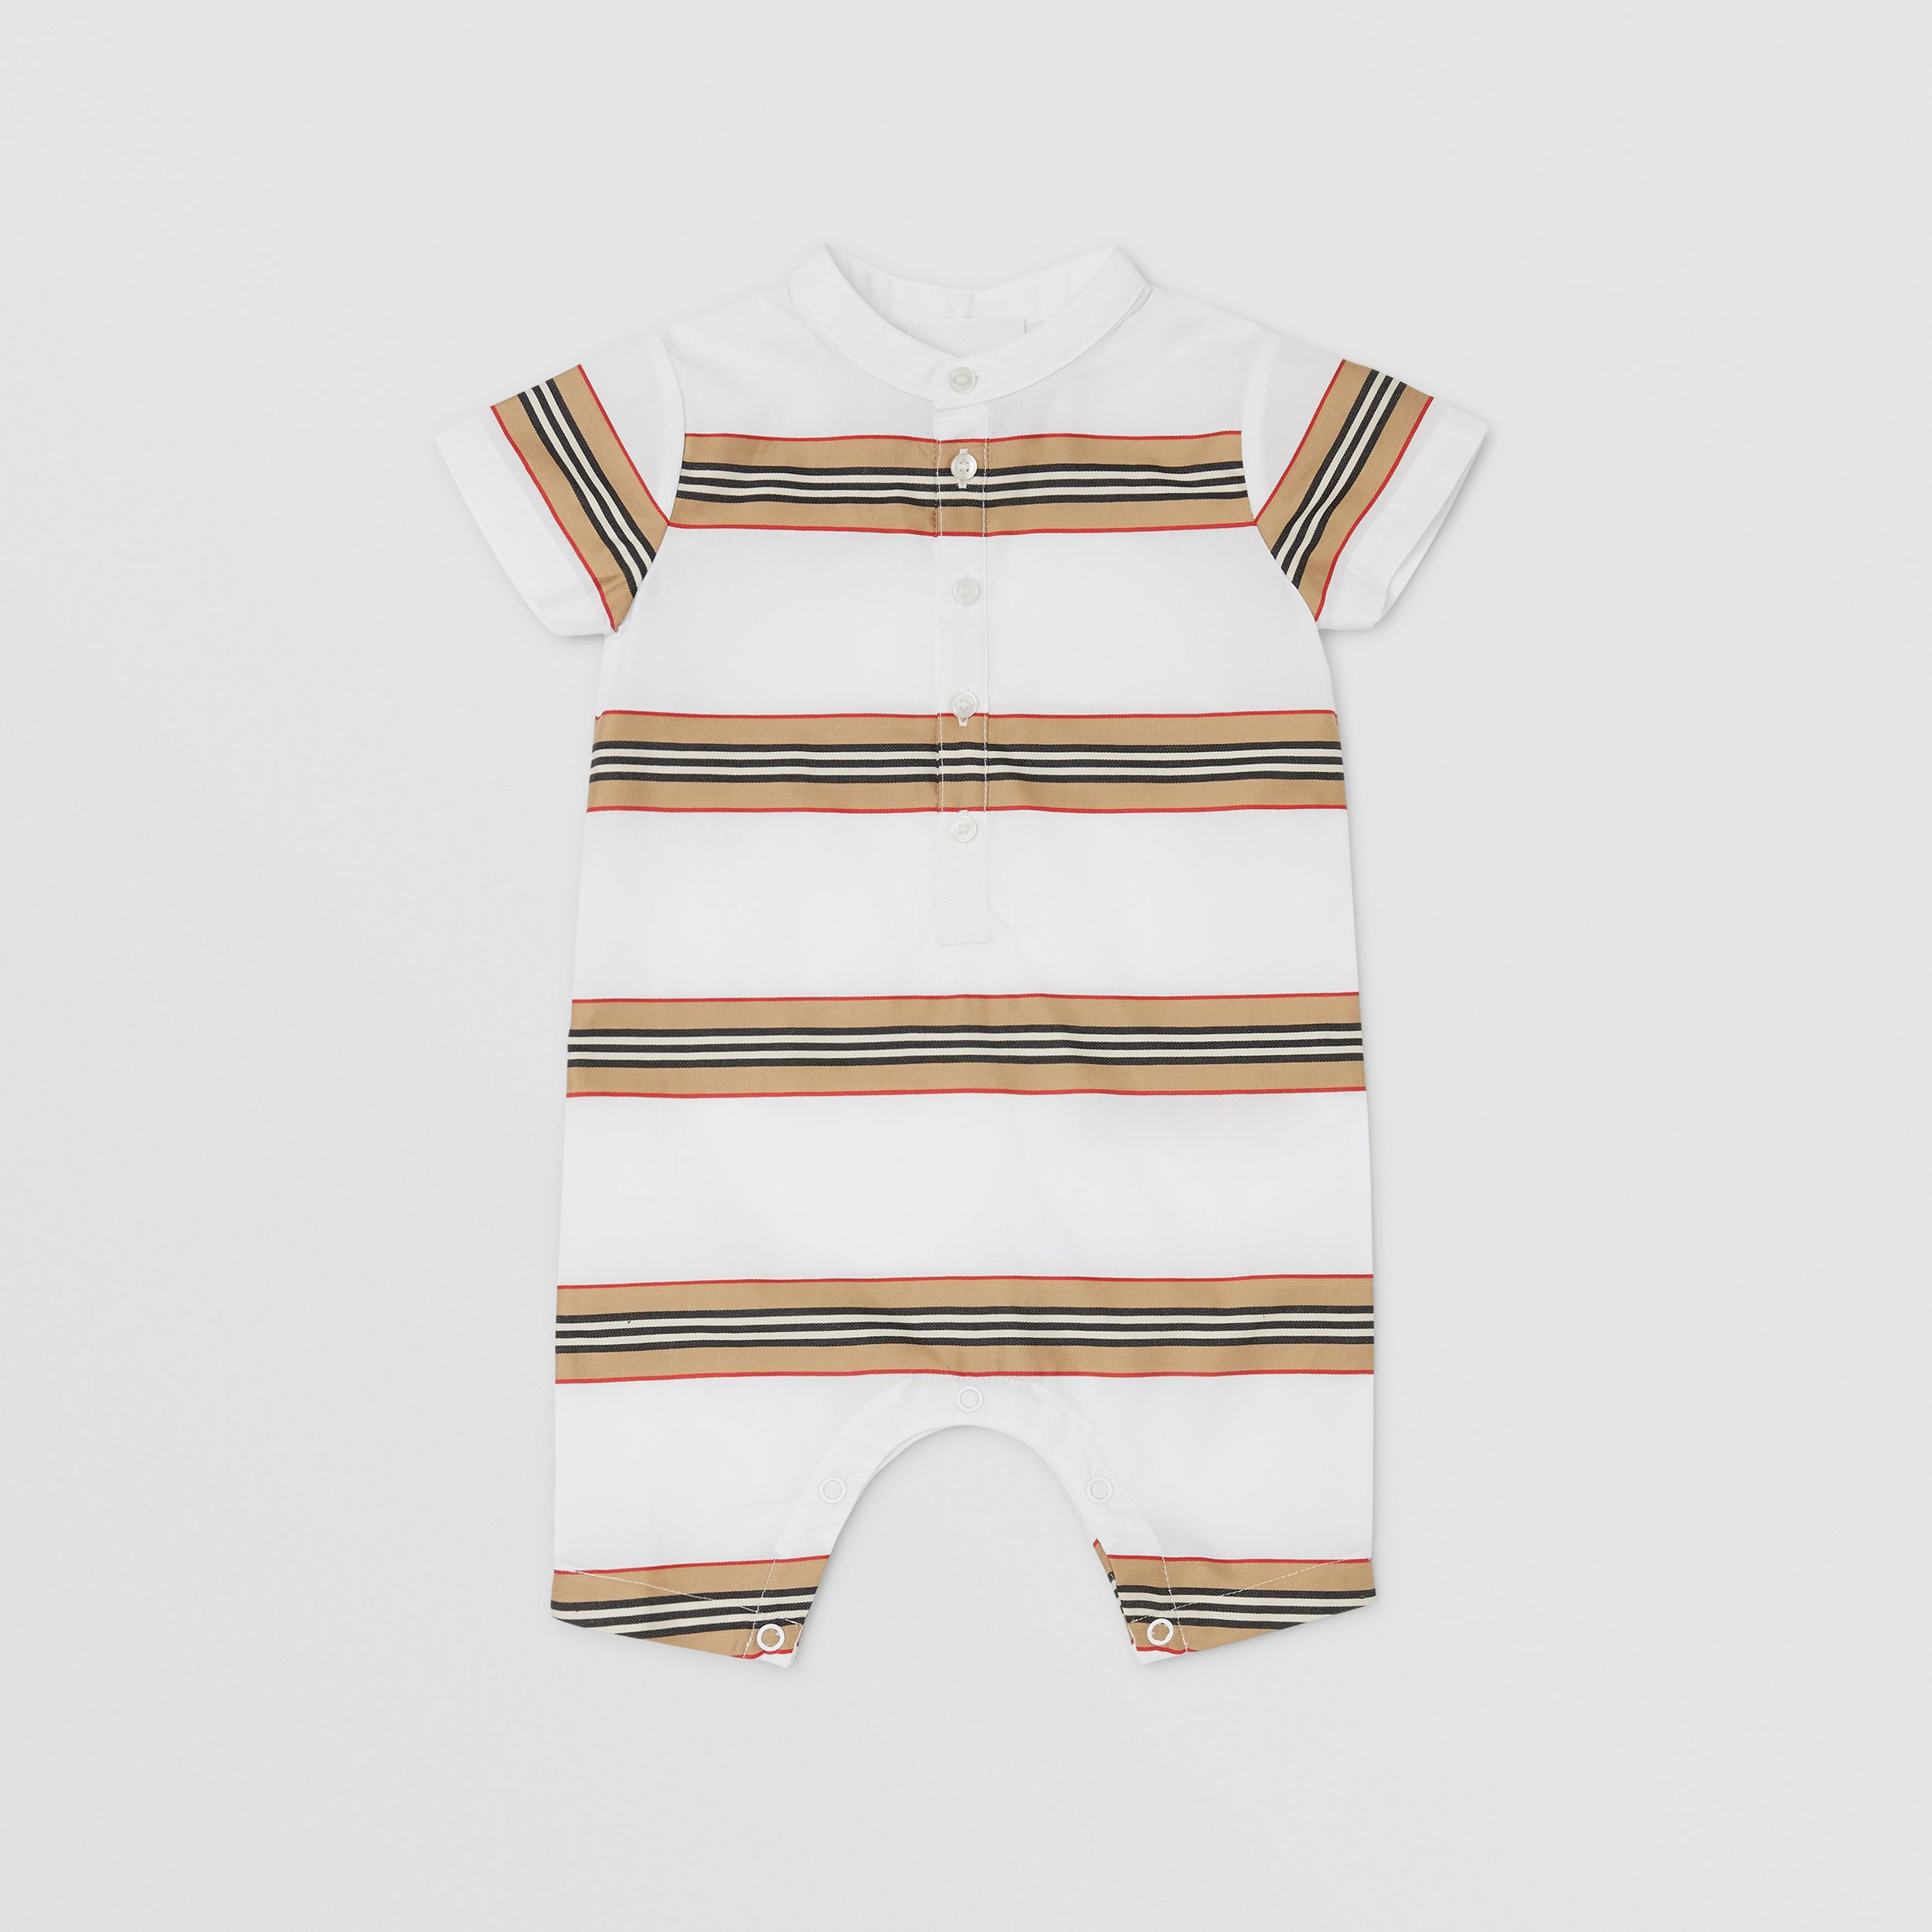 Icon Stripe Cotton Playsuit in White - Children | Burberry - 3